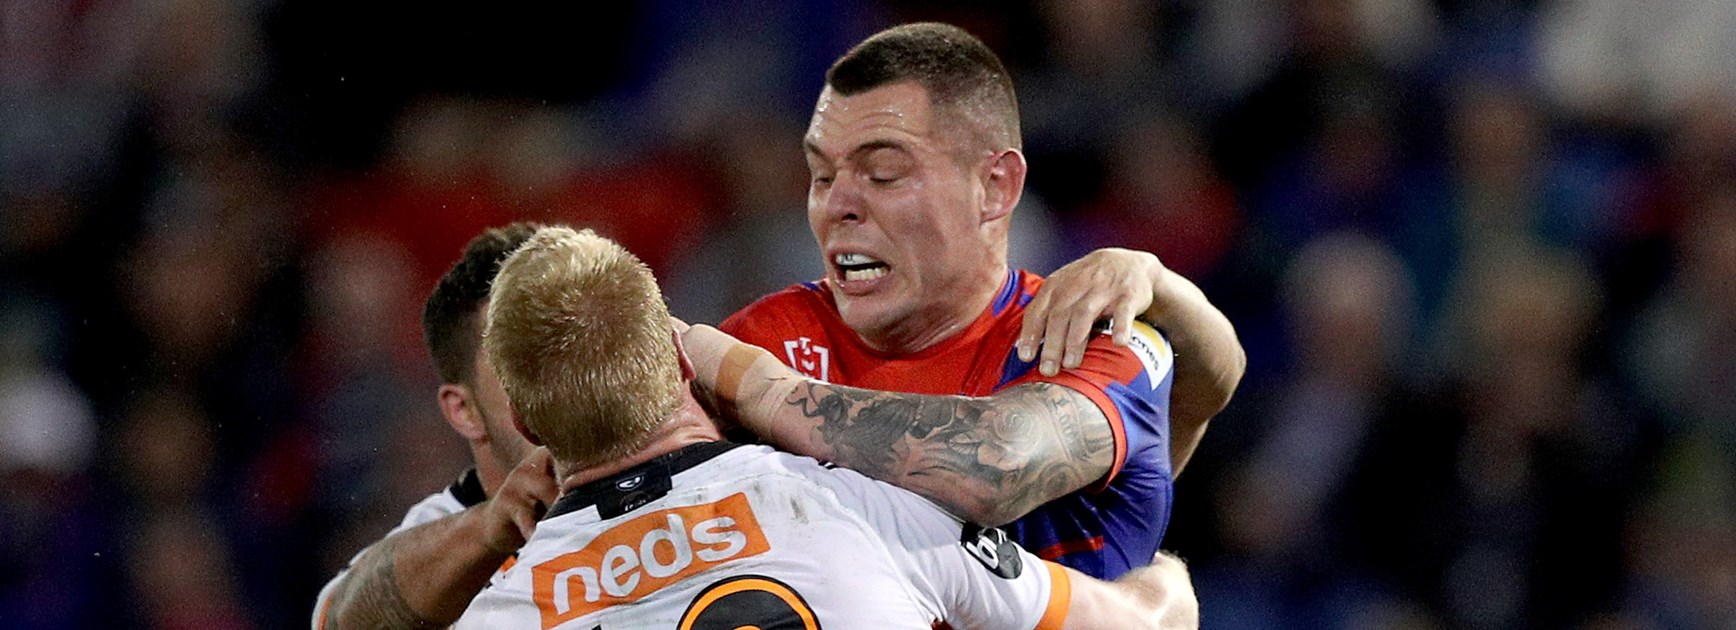 Numbers: No denying Klemmer's effort